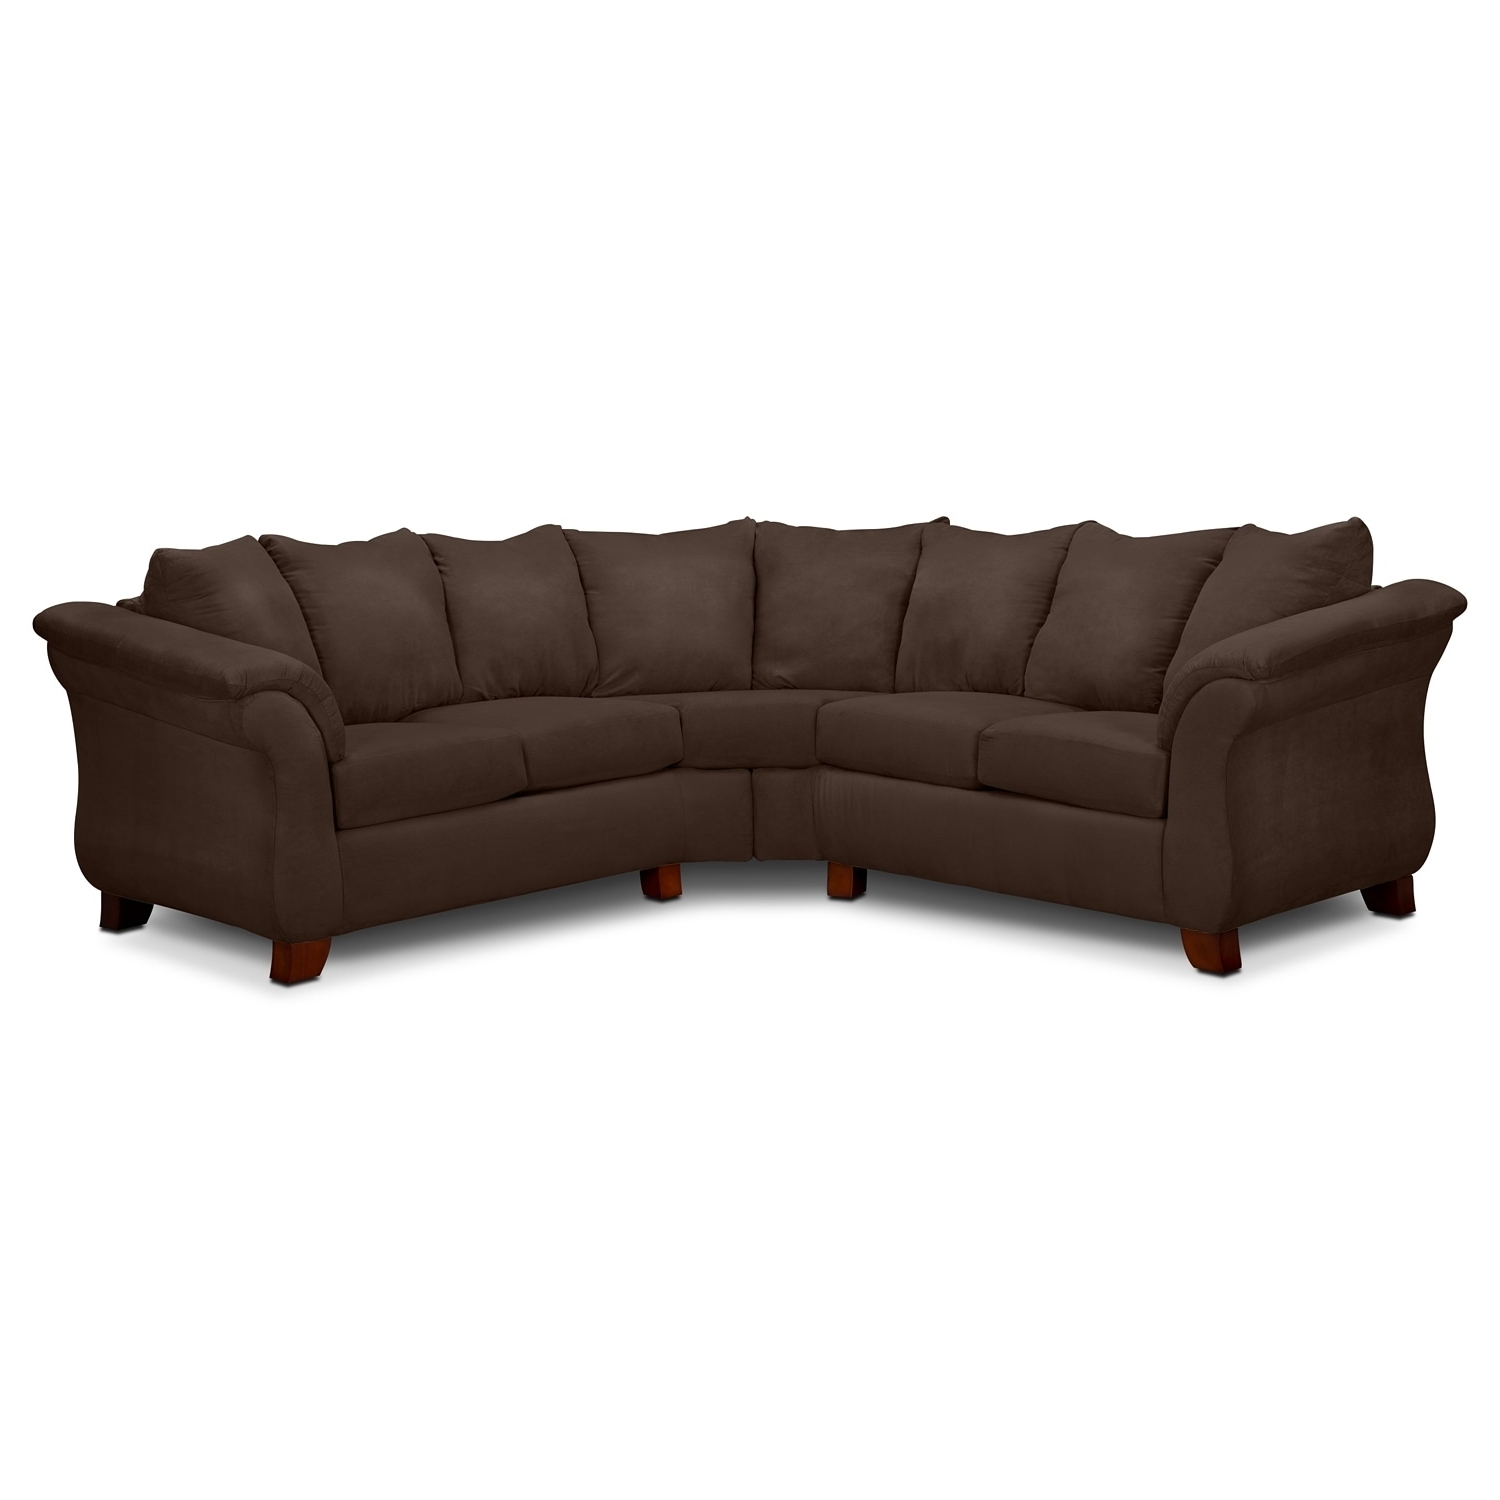 Value City Furniture And Mattresses In Popular Sectional Sofas Under 600 (Gallery 13 of 15)